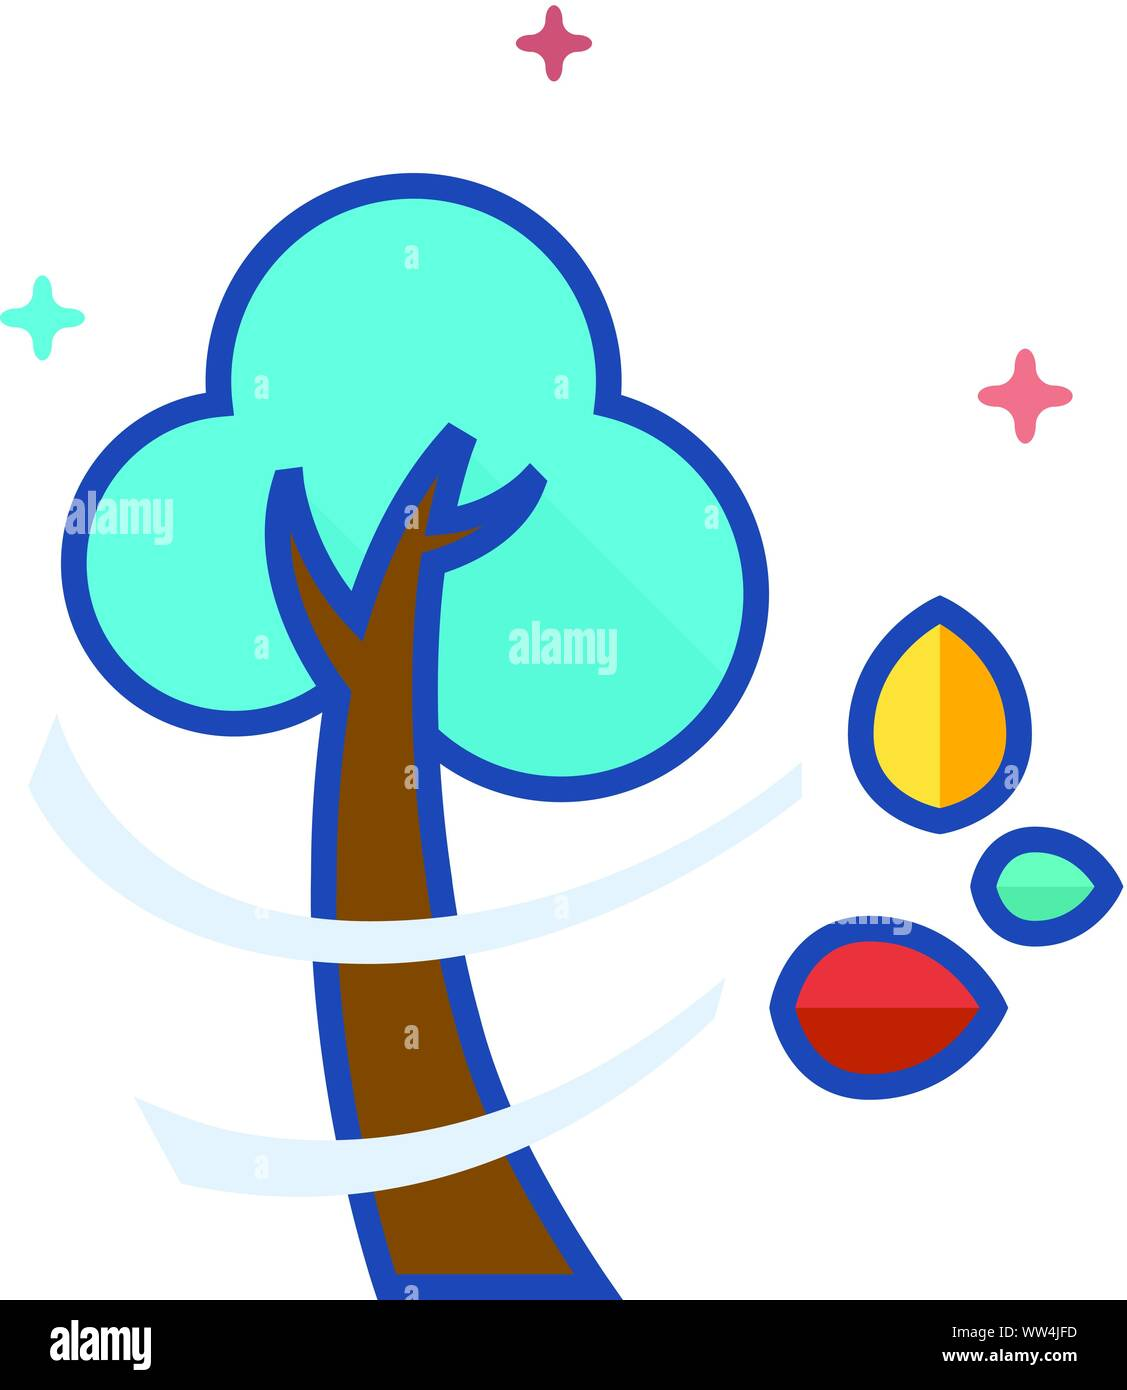 Baum Symbol in Umrissen flachen Farbe Stil. Vector Illustration. Stock Vektor